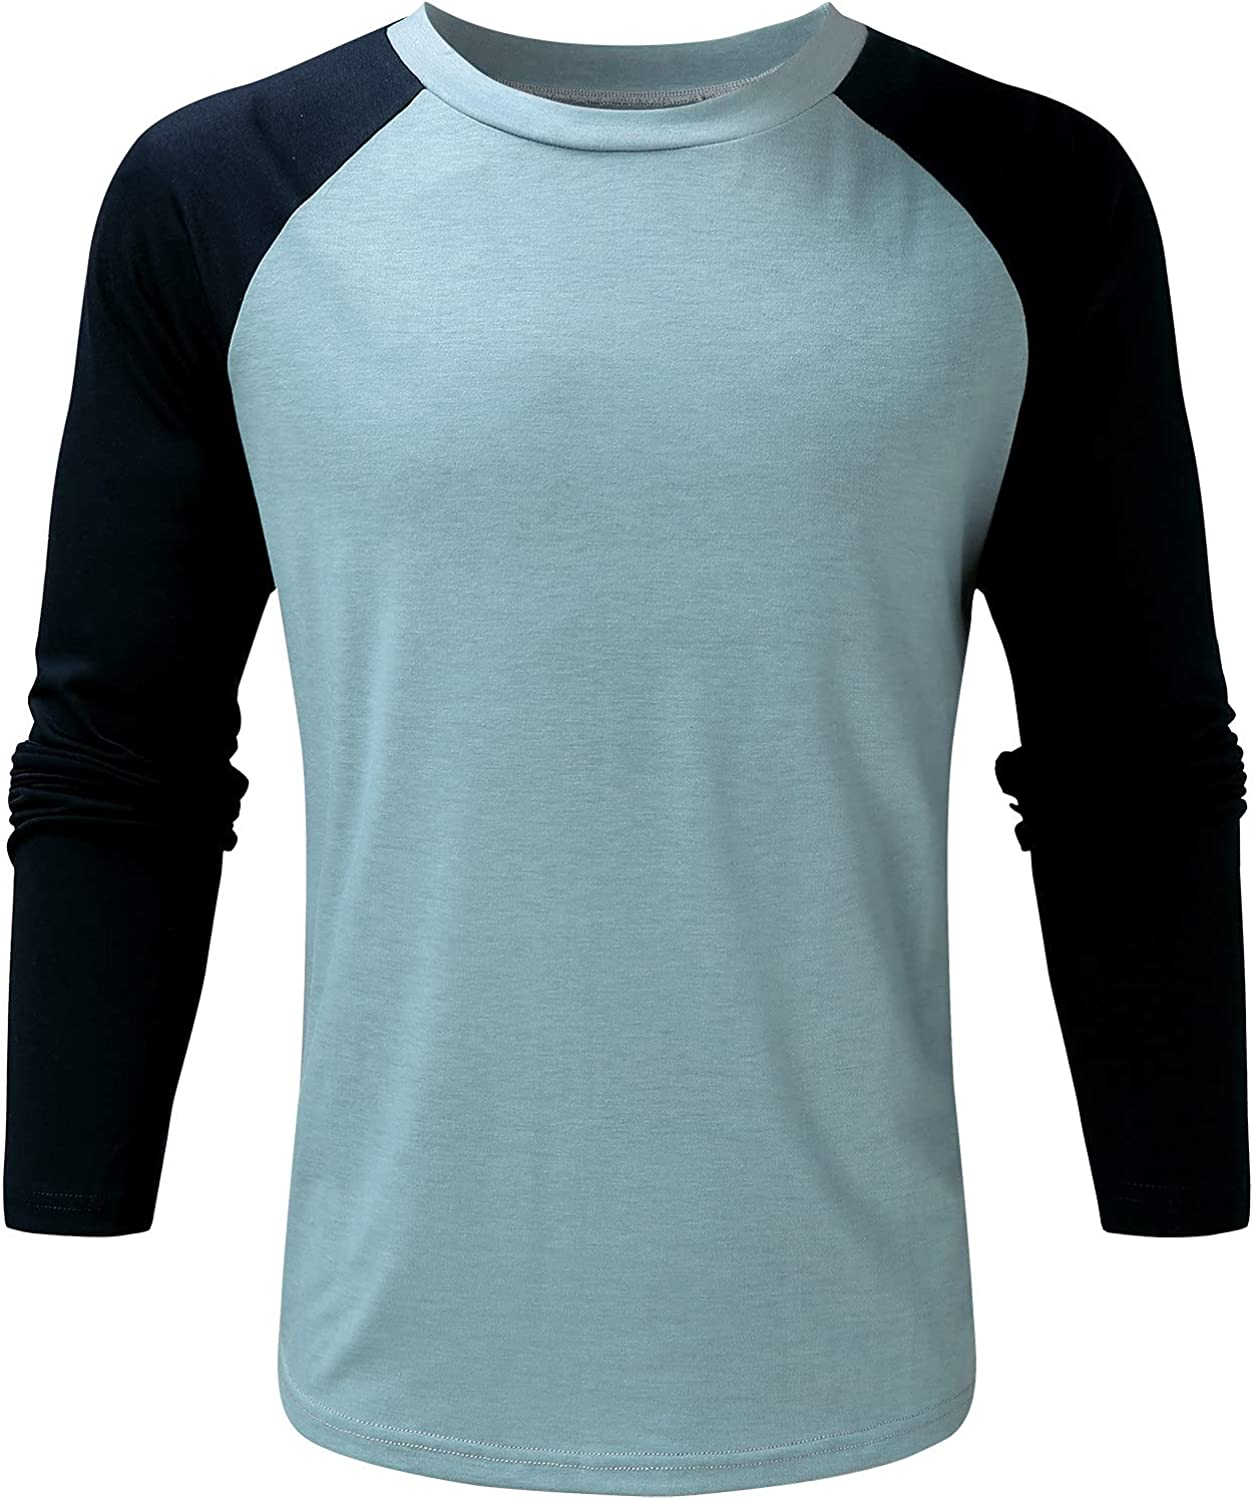 Cotton Sweatshirts for Men Hoodie, Bottoming Long Sleeves Hooded Warm Lightweight Pullover Casual Winter Outwear